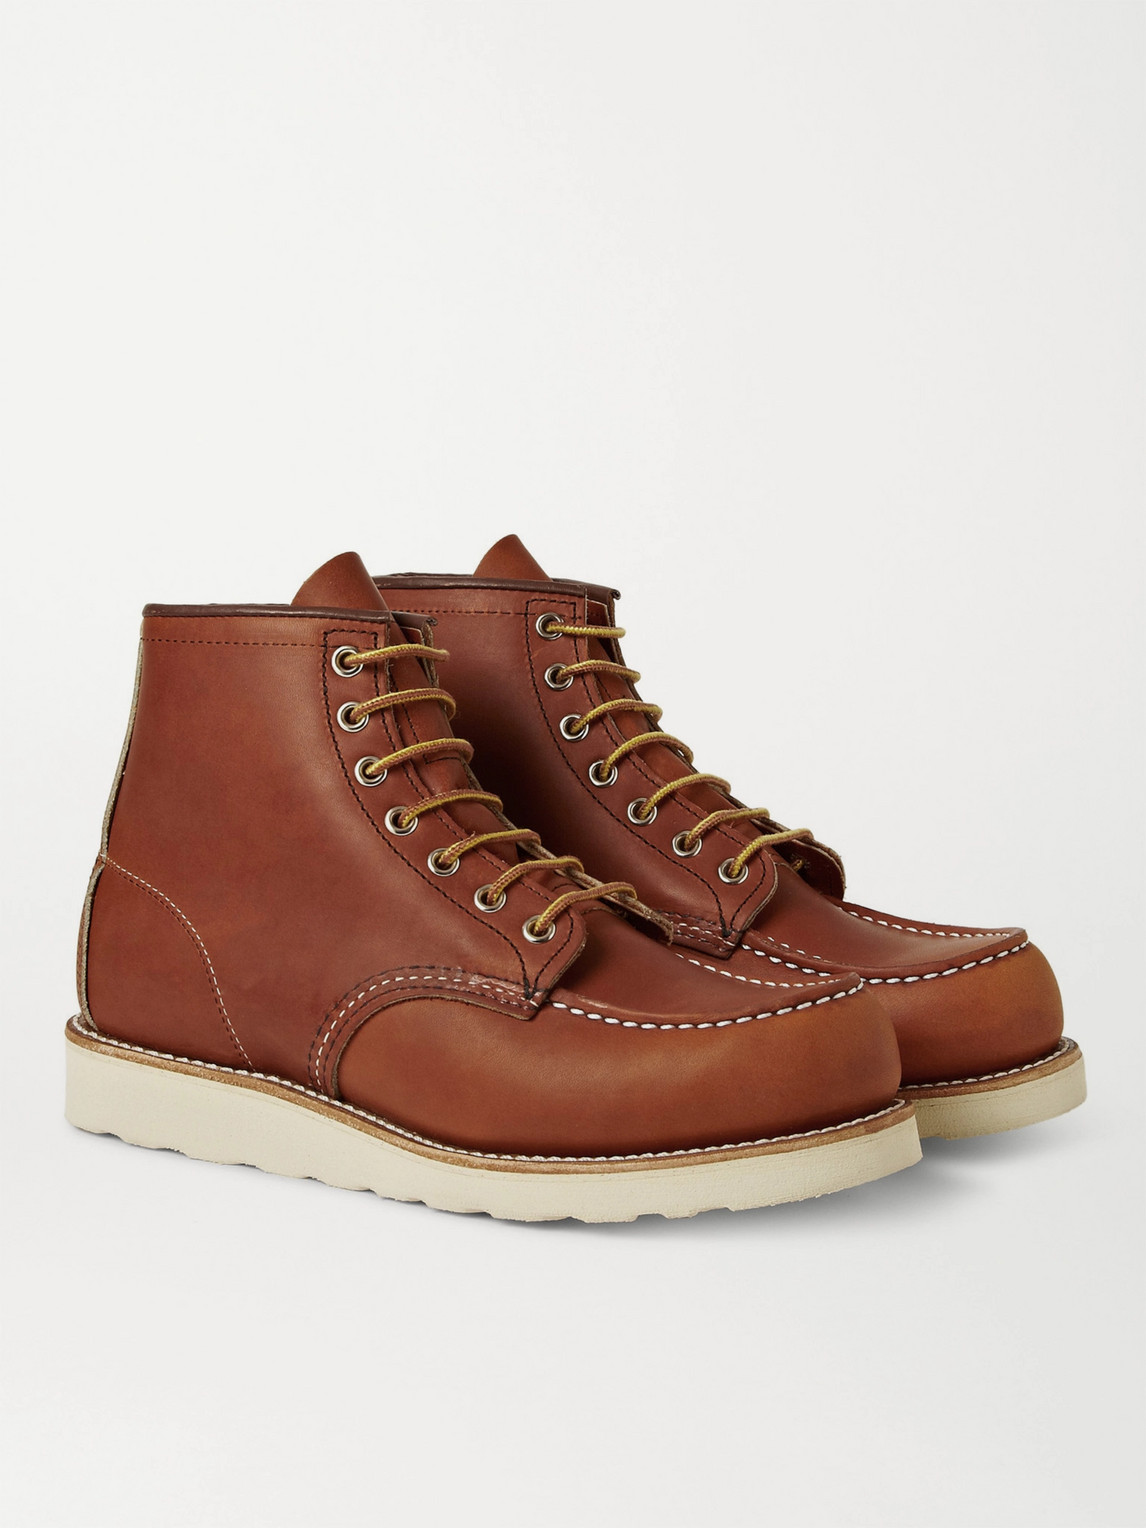 Red Wing Shoes Legacy Moc Toe Ankle